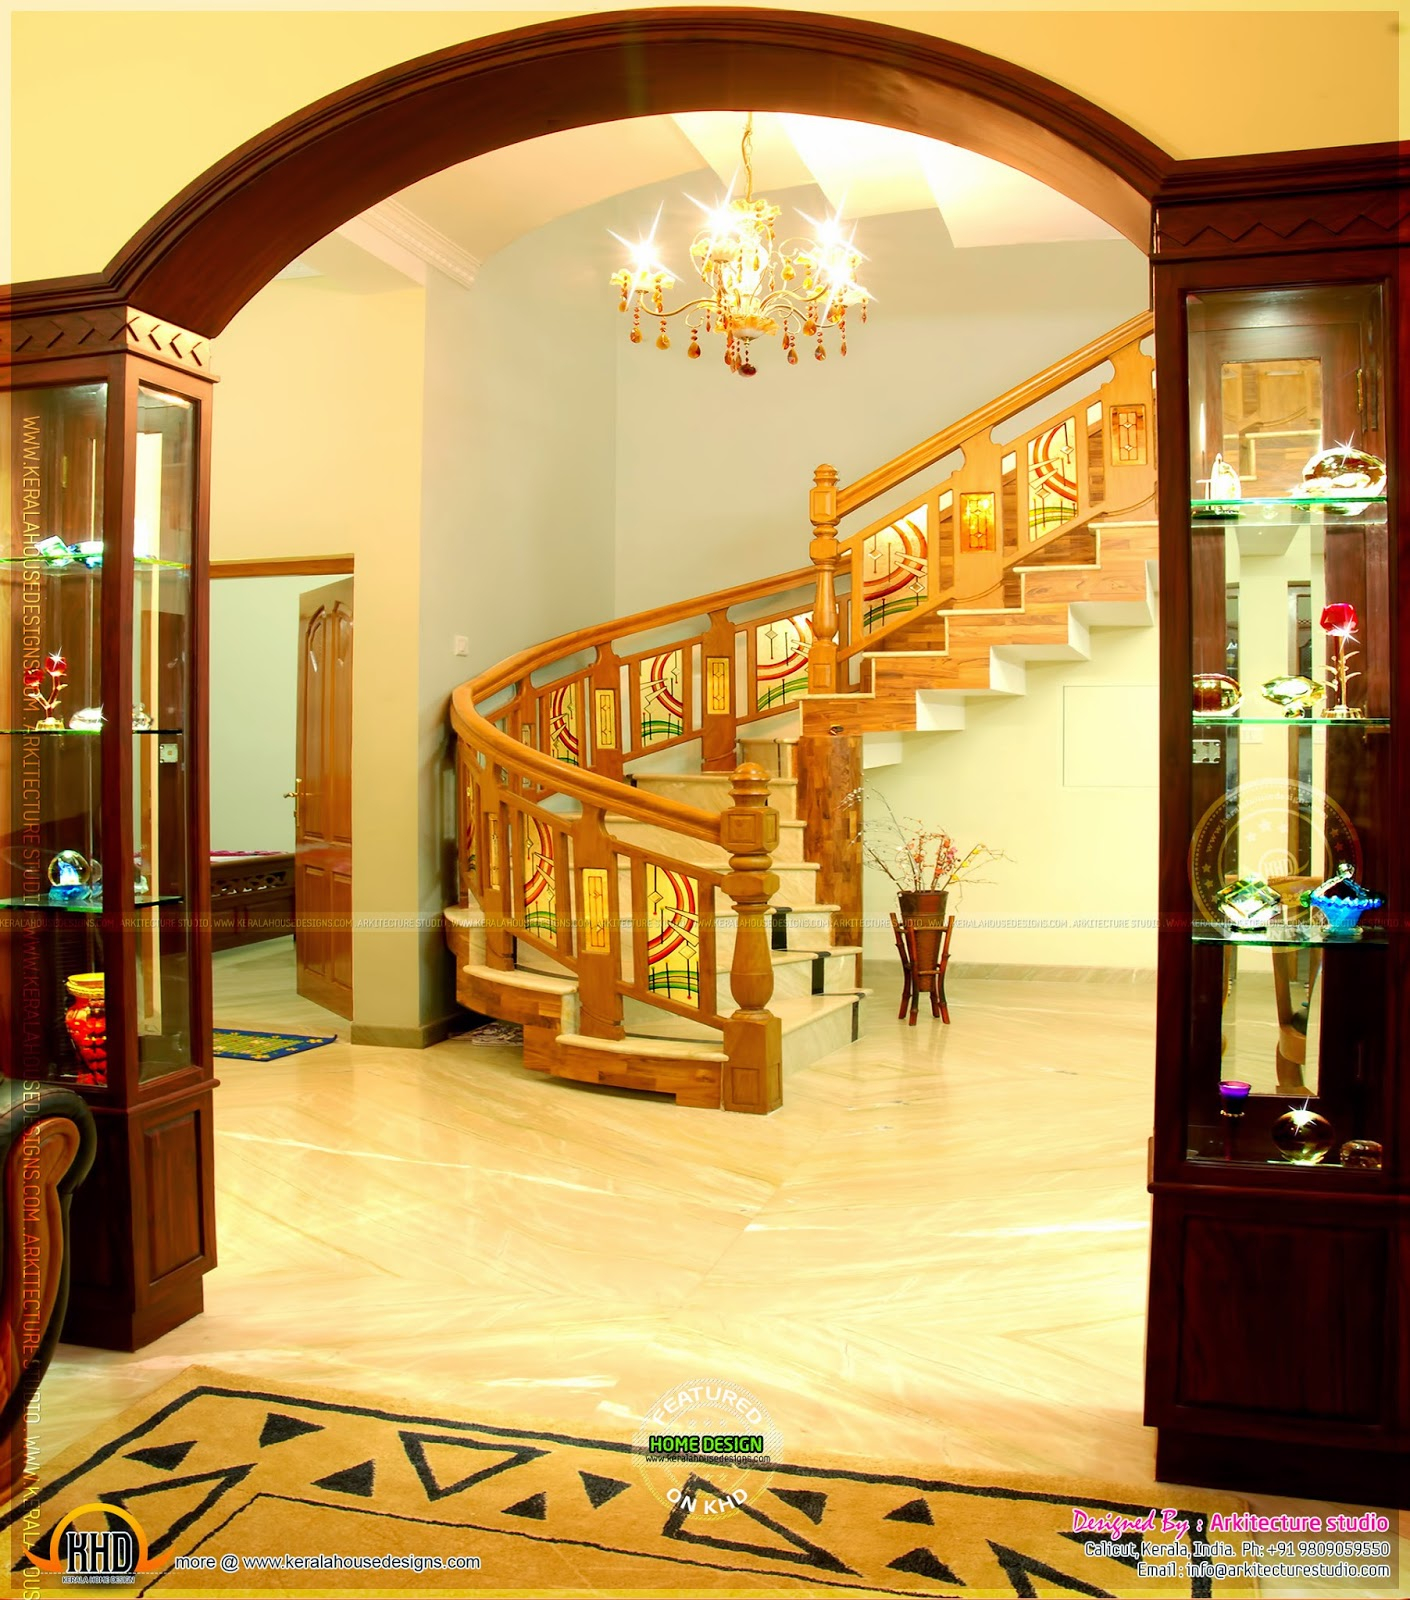 Real house in kerala with interior photos kerala home for Interior decoration of house photos